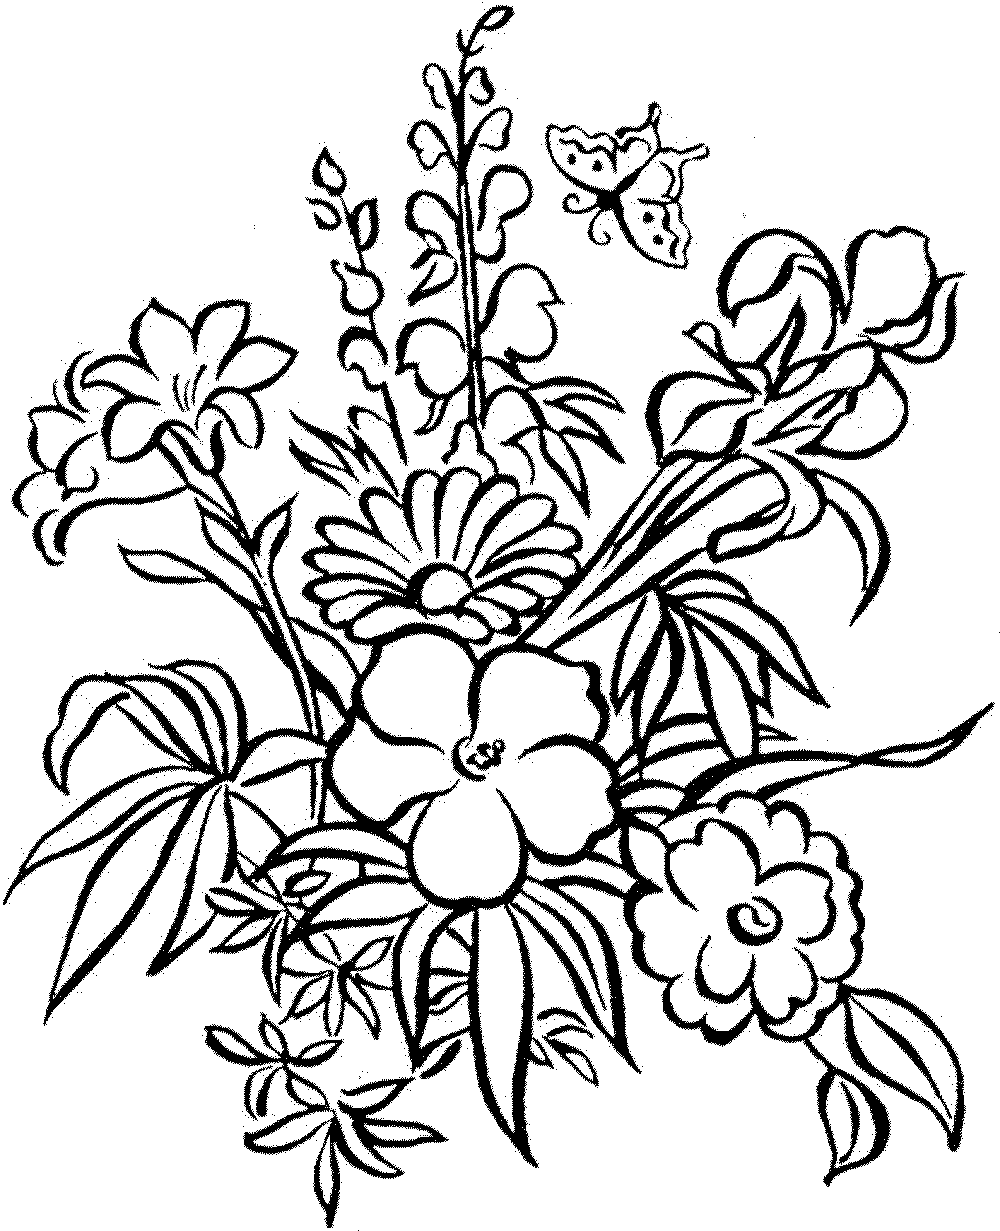 colouring pages for flowers detailed flower coloring pages to download and print for free flowers for pages colouring